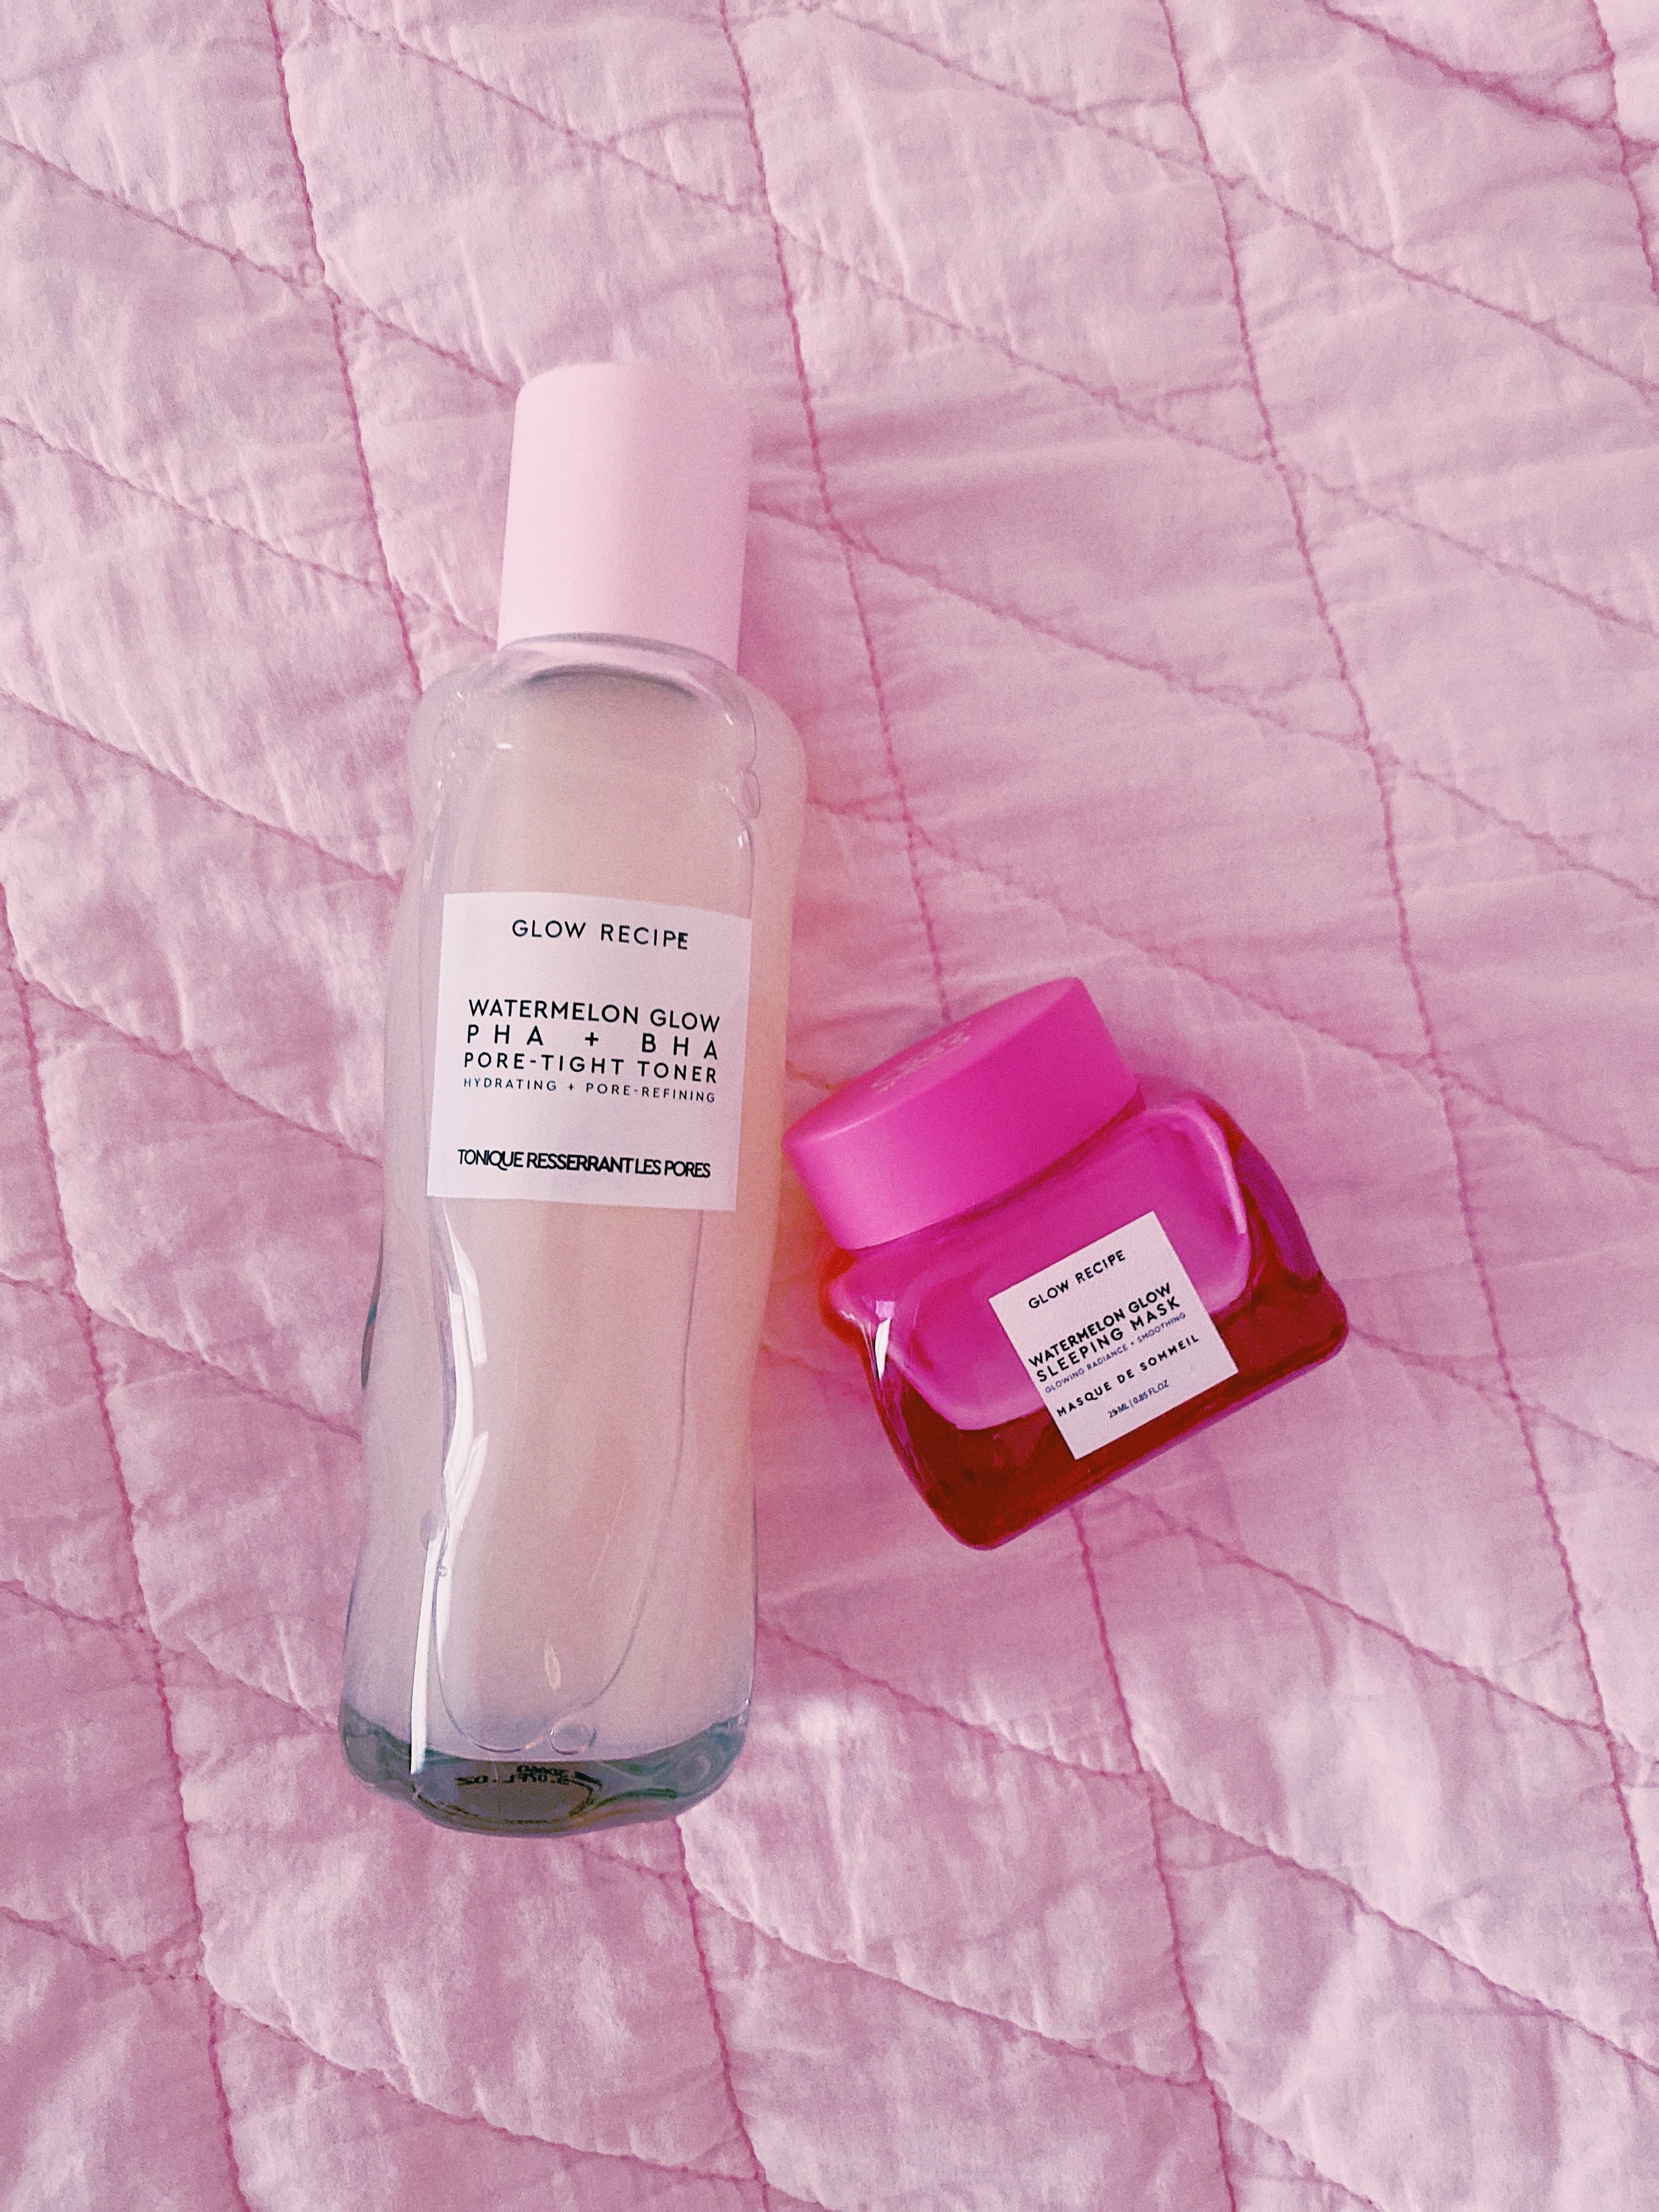 a pink glass bottle of the watermelon toner